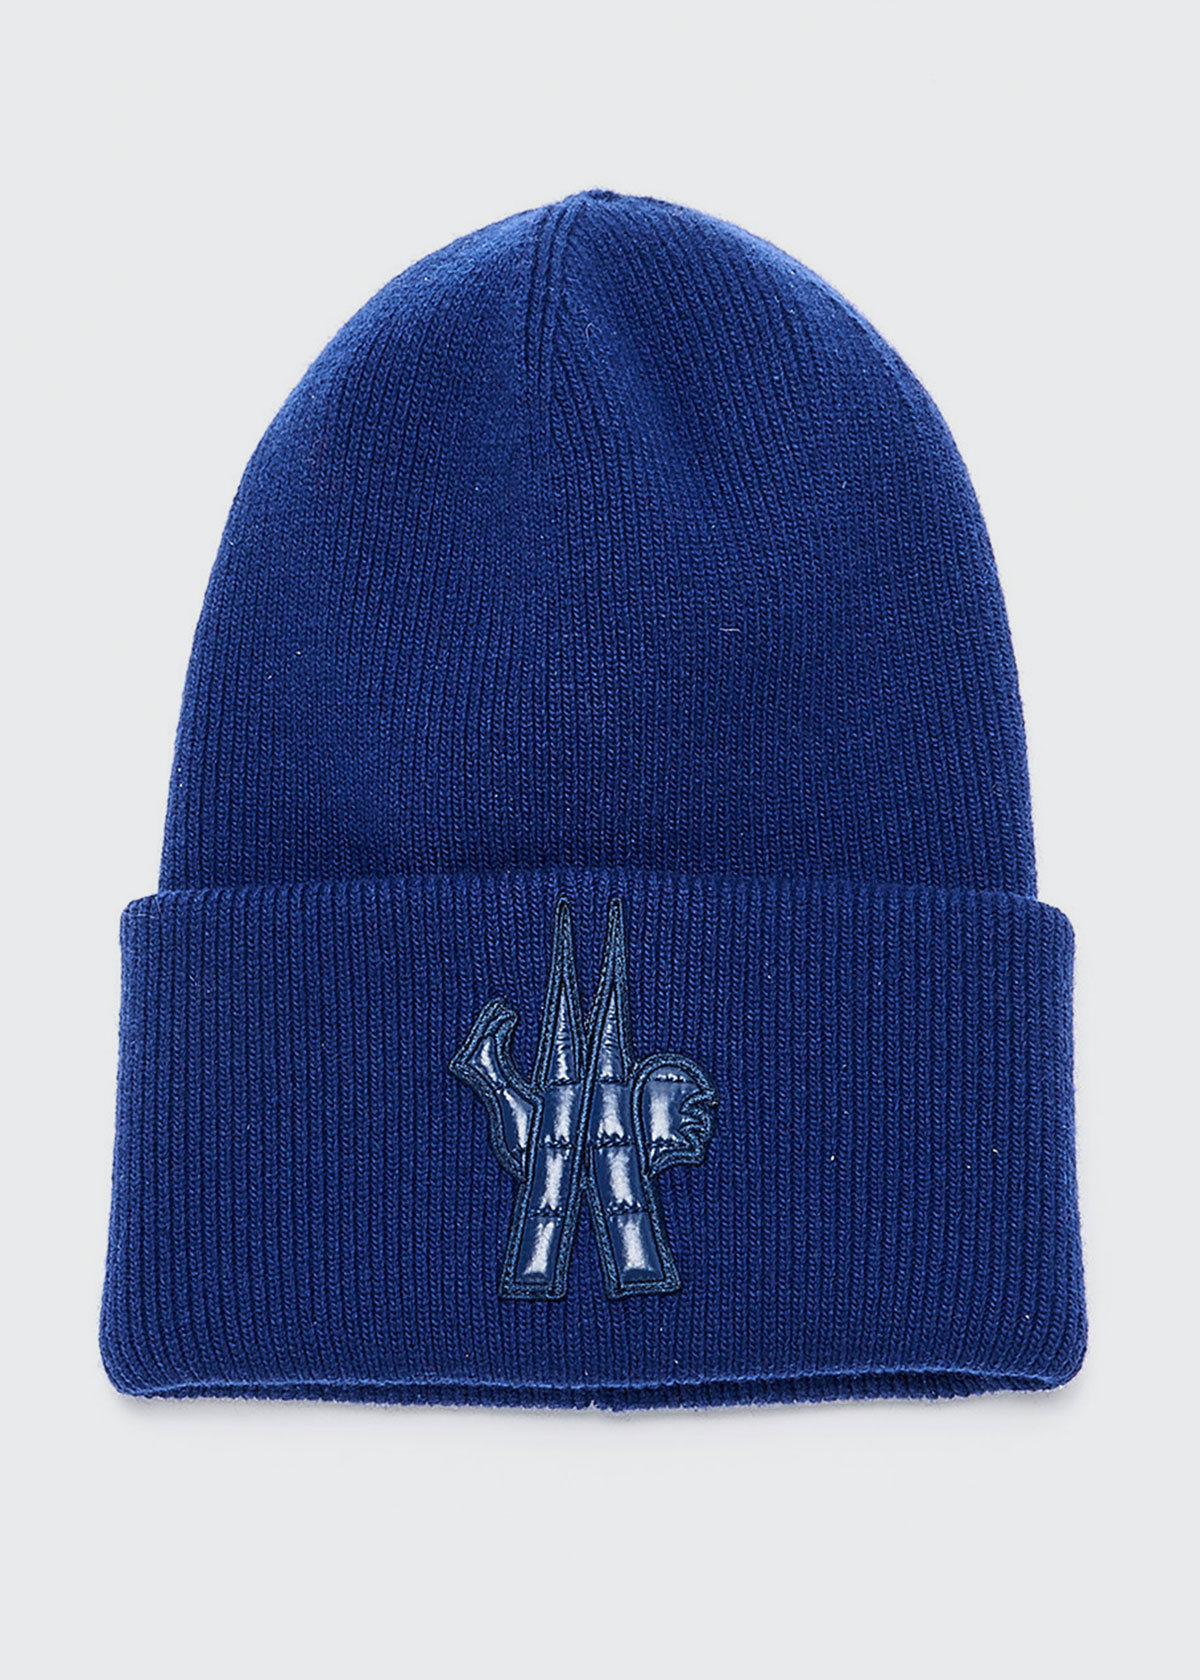 Moncler Hats MEN'S BERRETTO RIB-KNIT BEANIE HAT